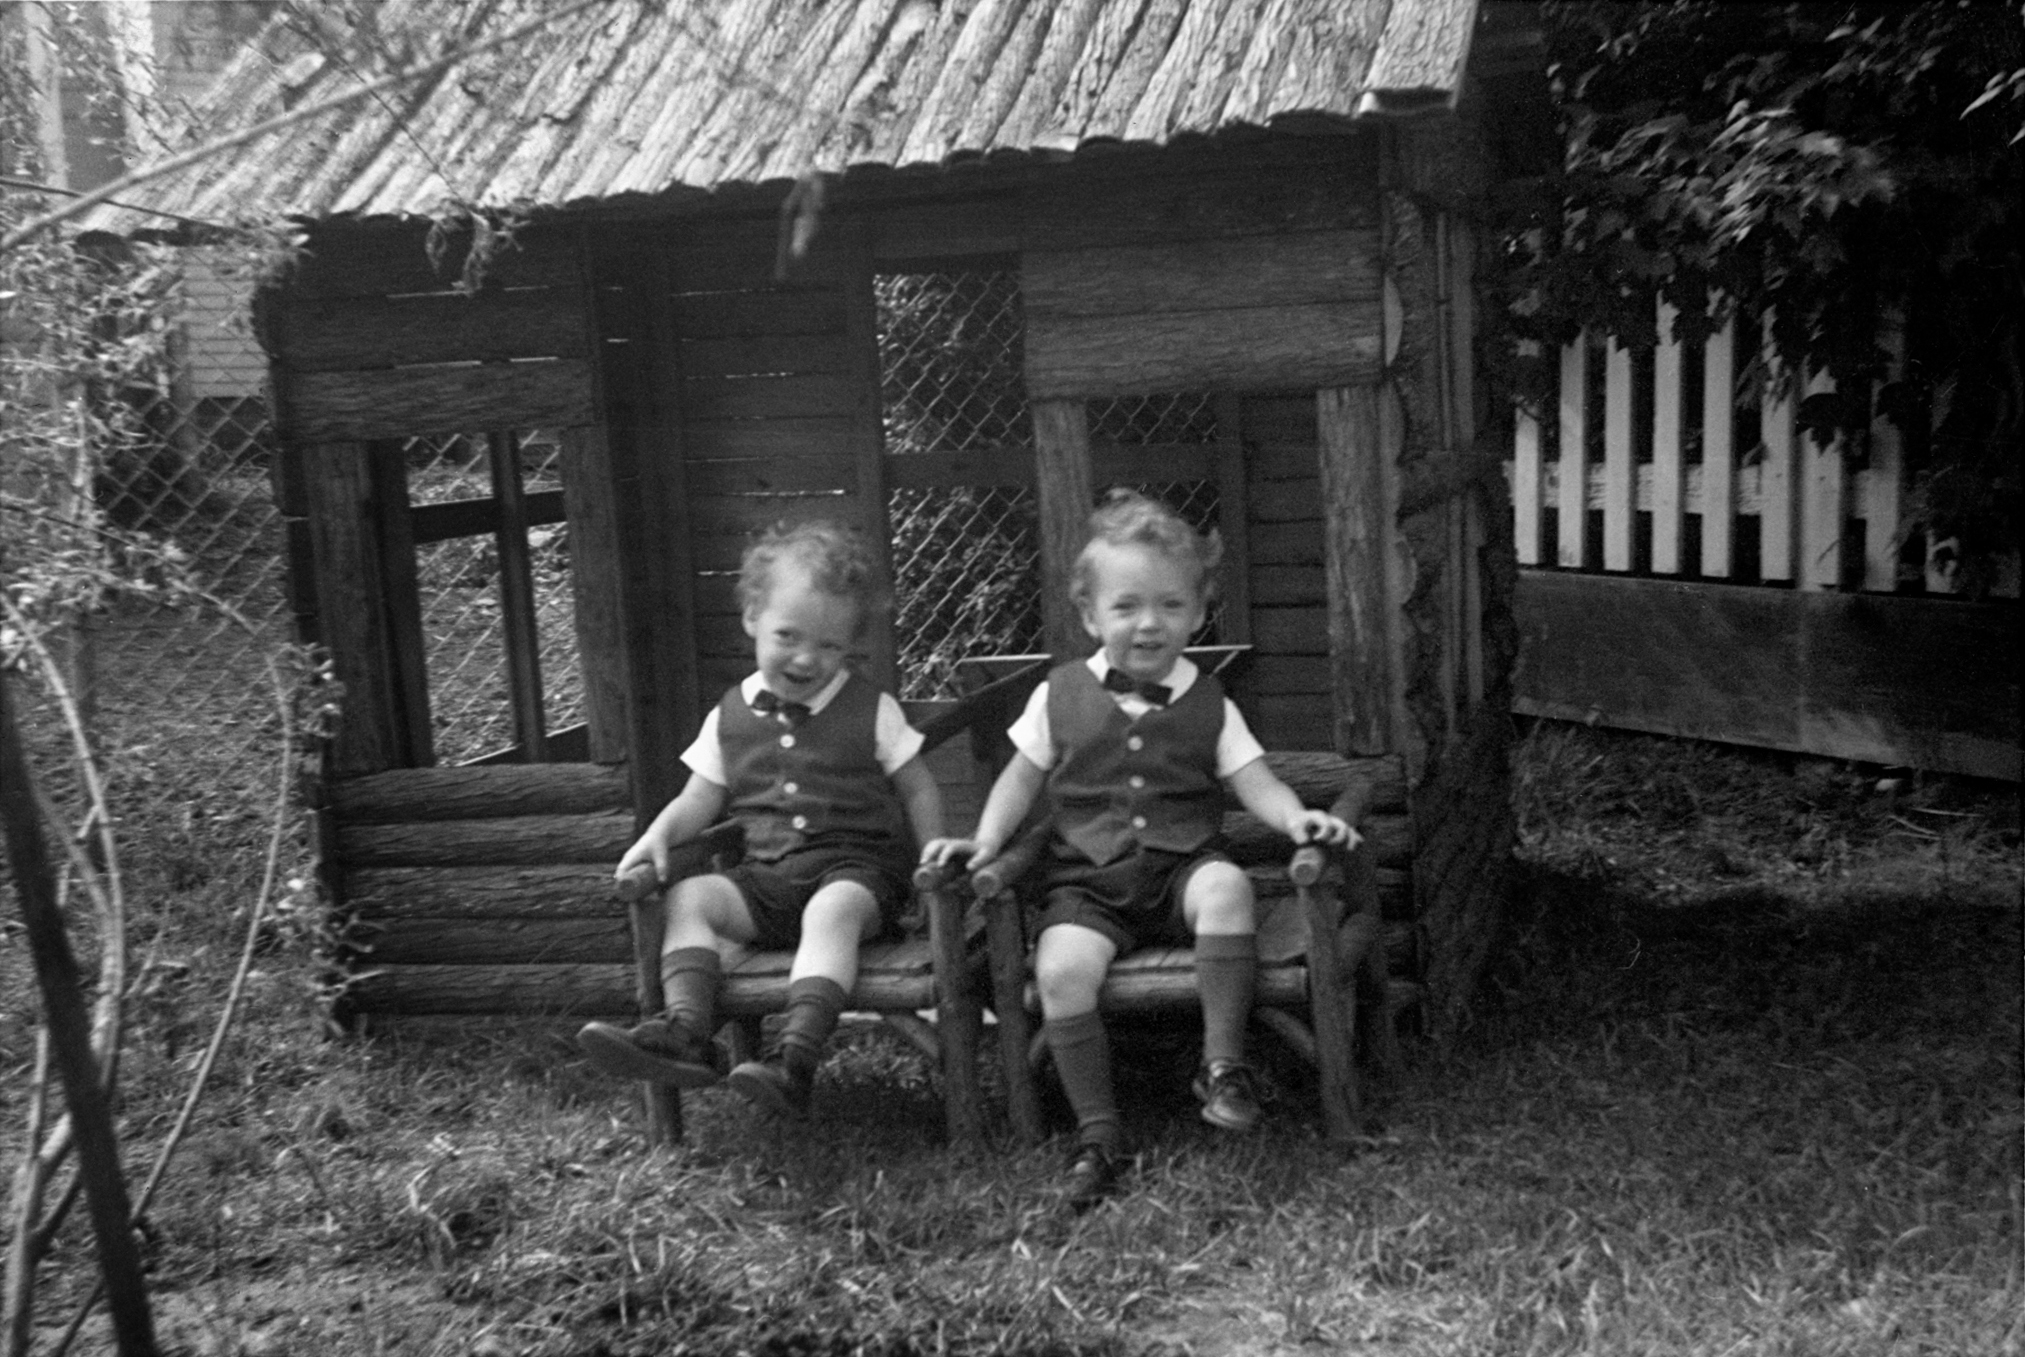 At age 2, Mark and Scott in 1966